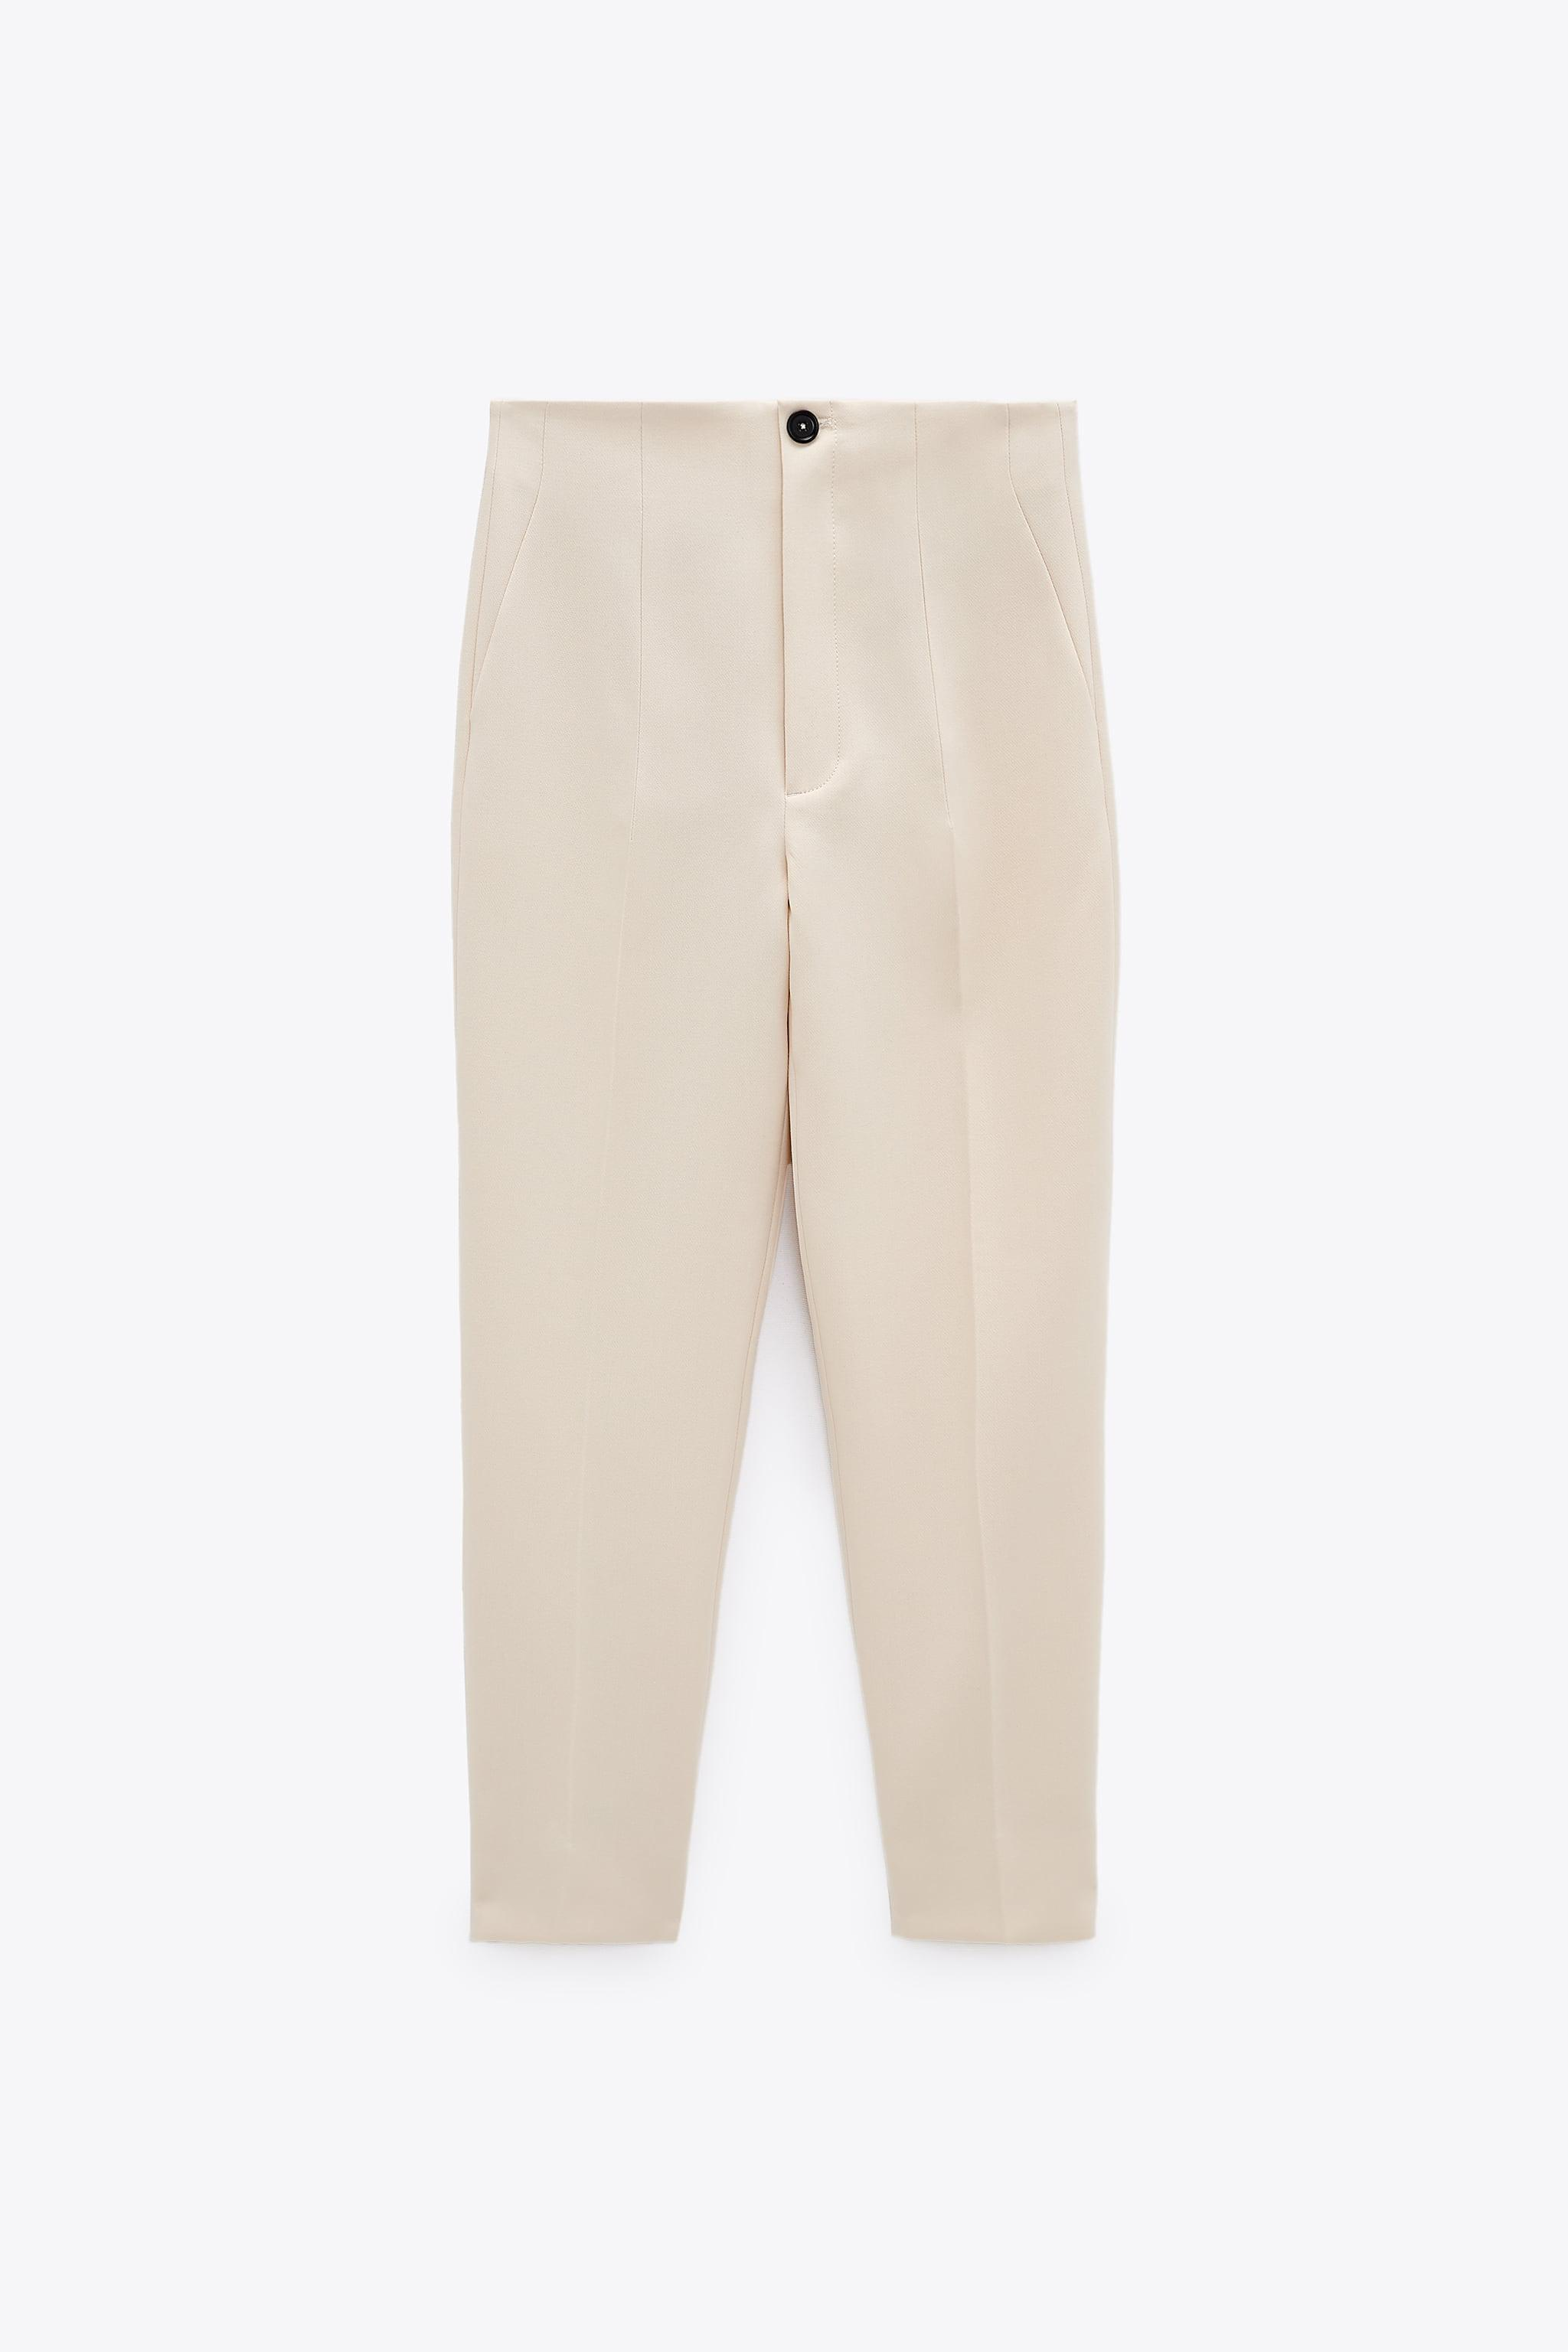 HIGH-WAISTED PANTS WITH VENTS 8